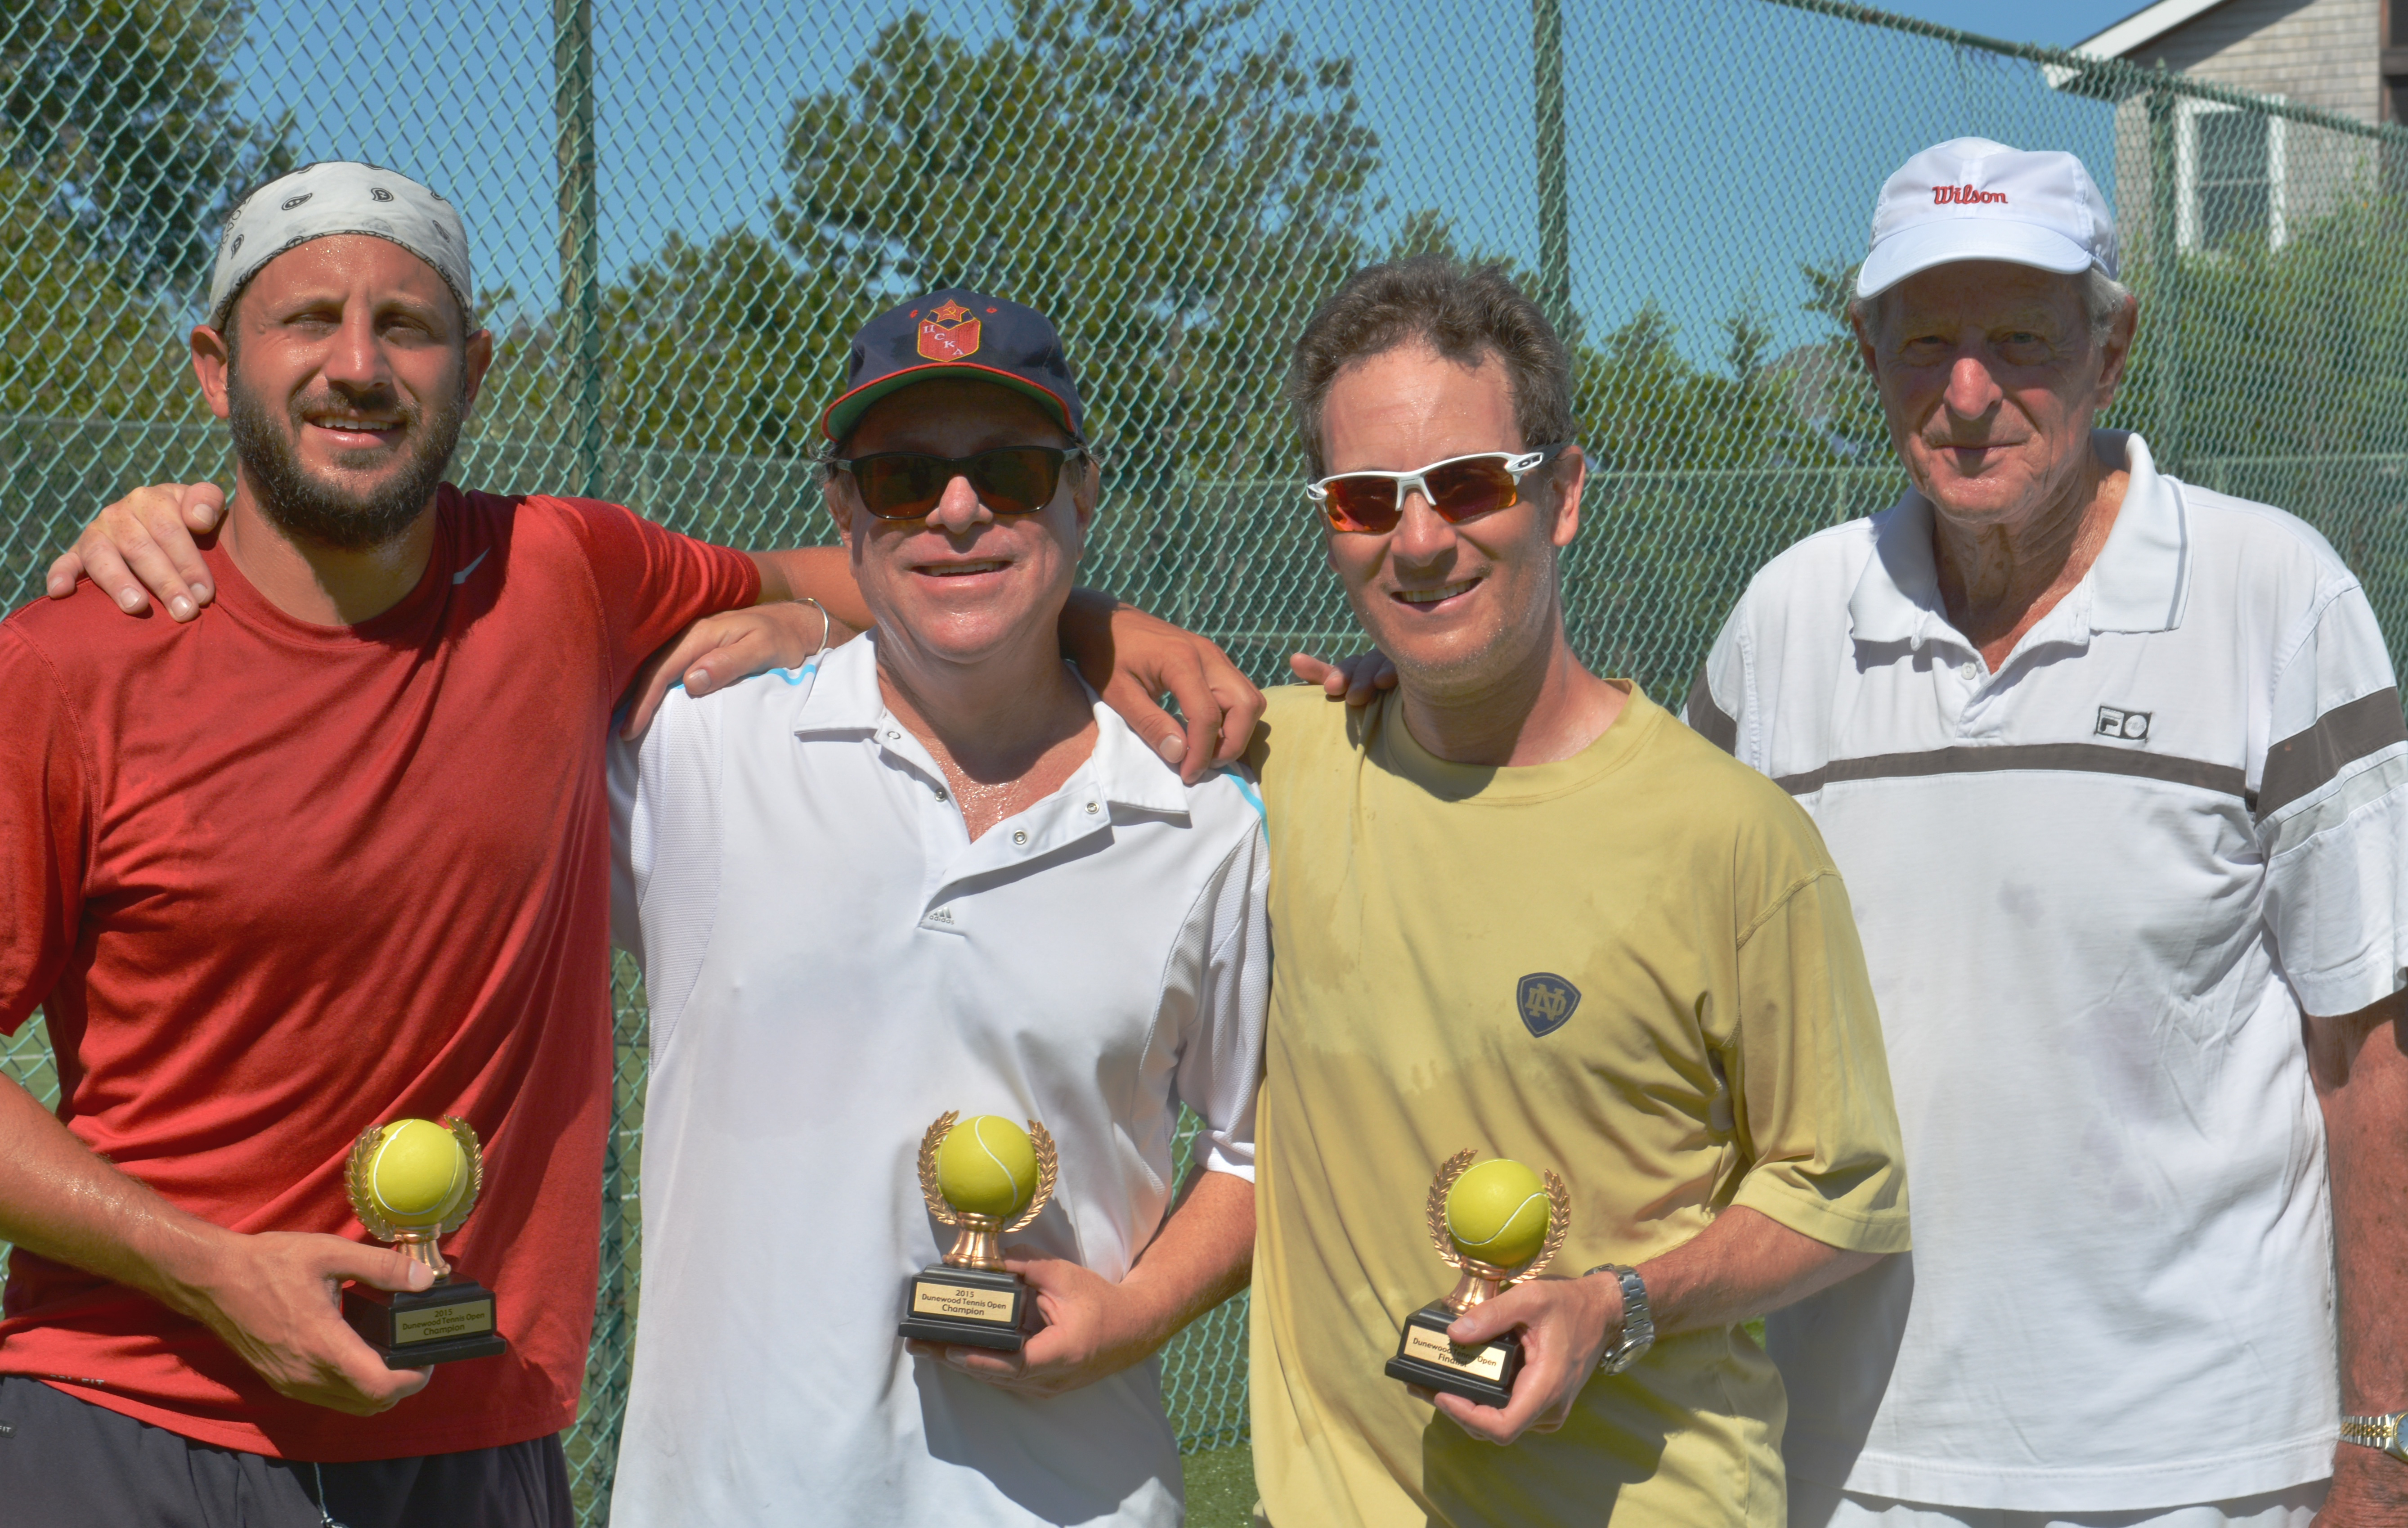 From left to right: 2015 -Finalist: Rich Perna & Rich Roth.  Runners up: Peter Taub & Bob Stone.